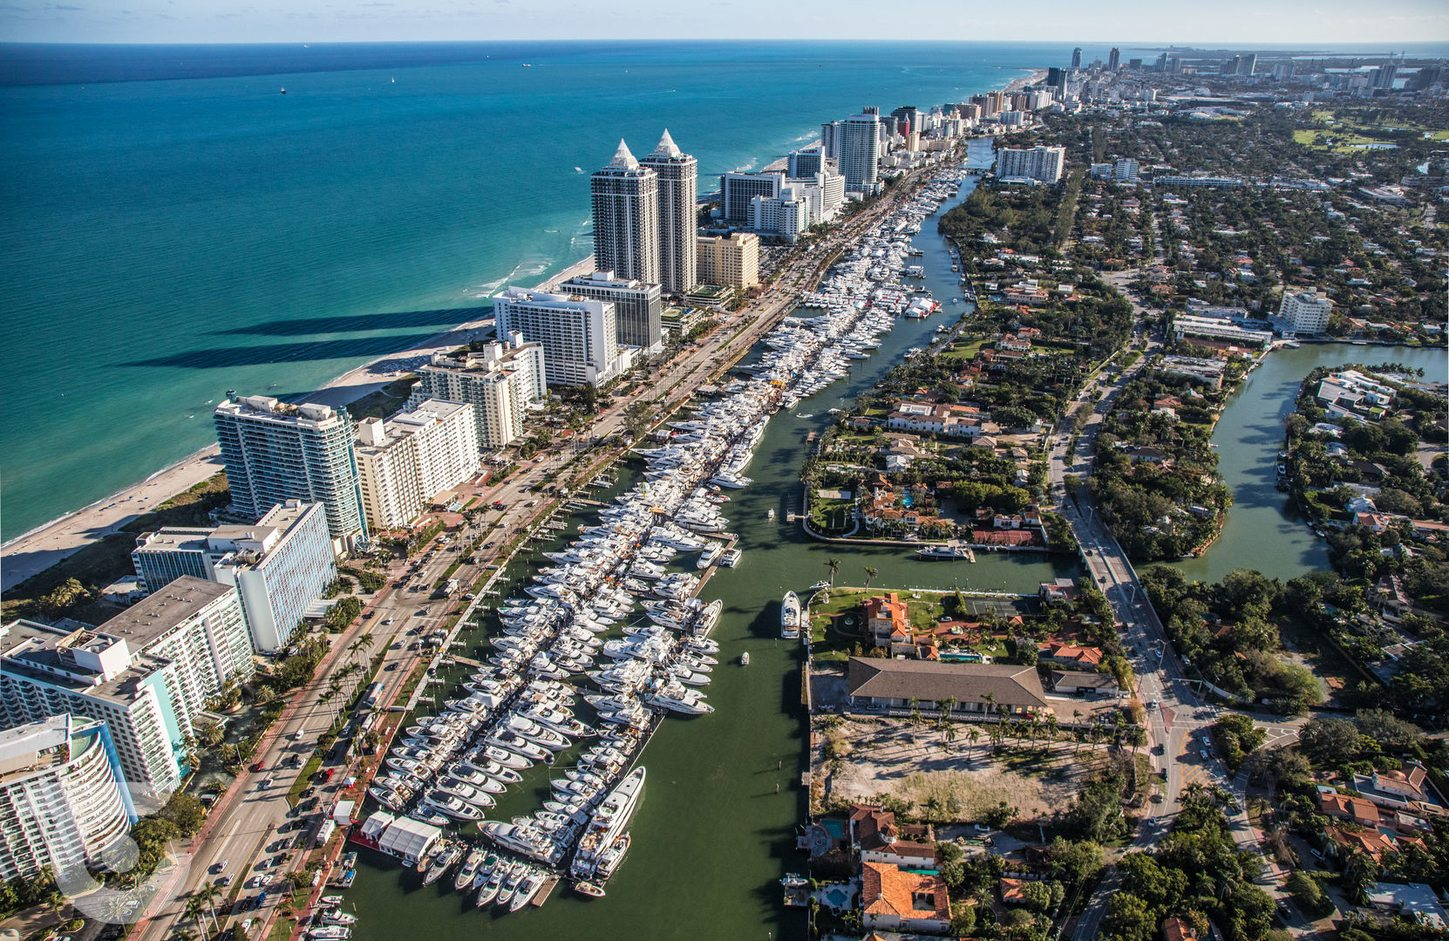 yachts lined up along the Indian Creek Waterway for the Miami Yacht Show